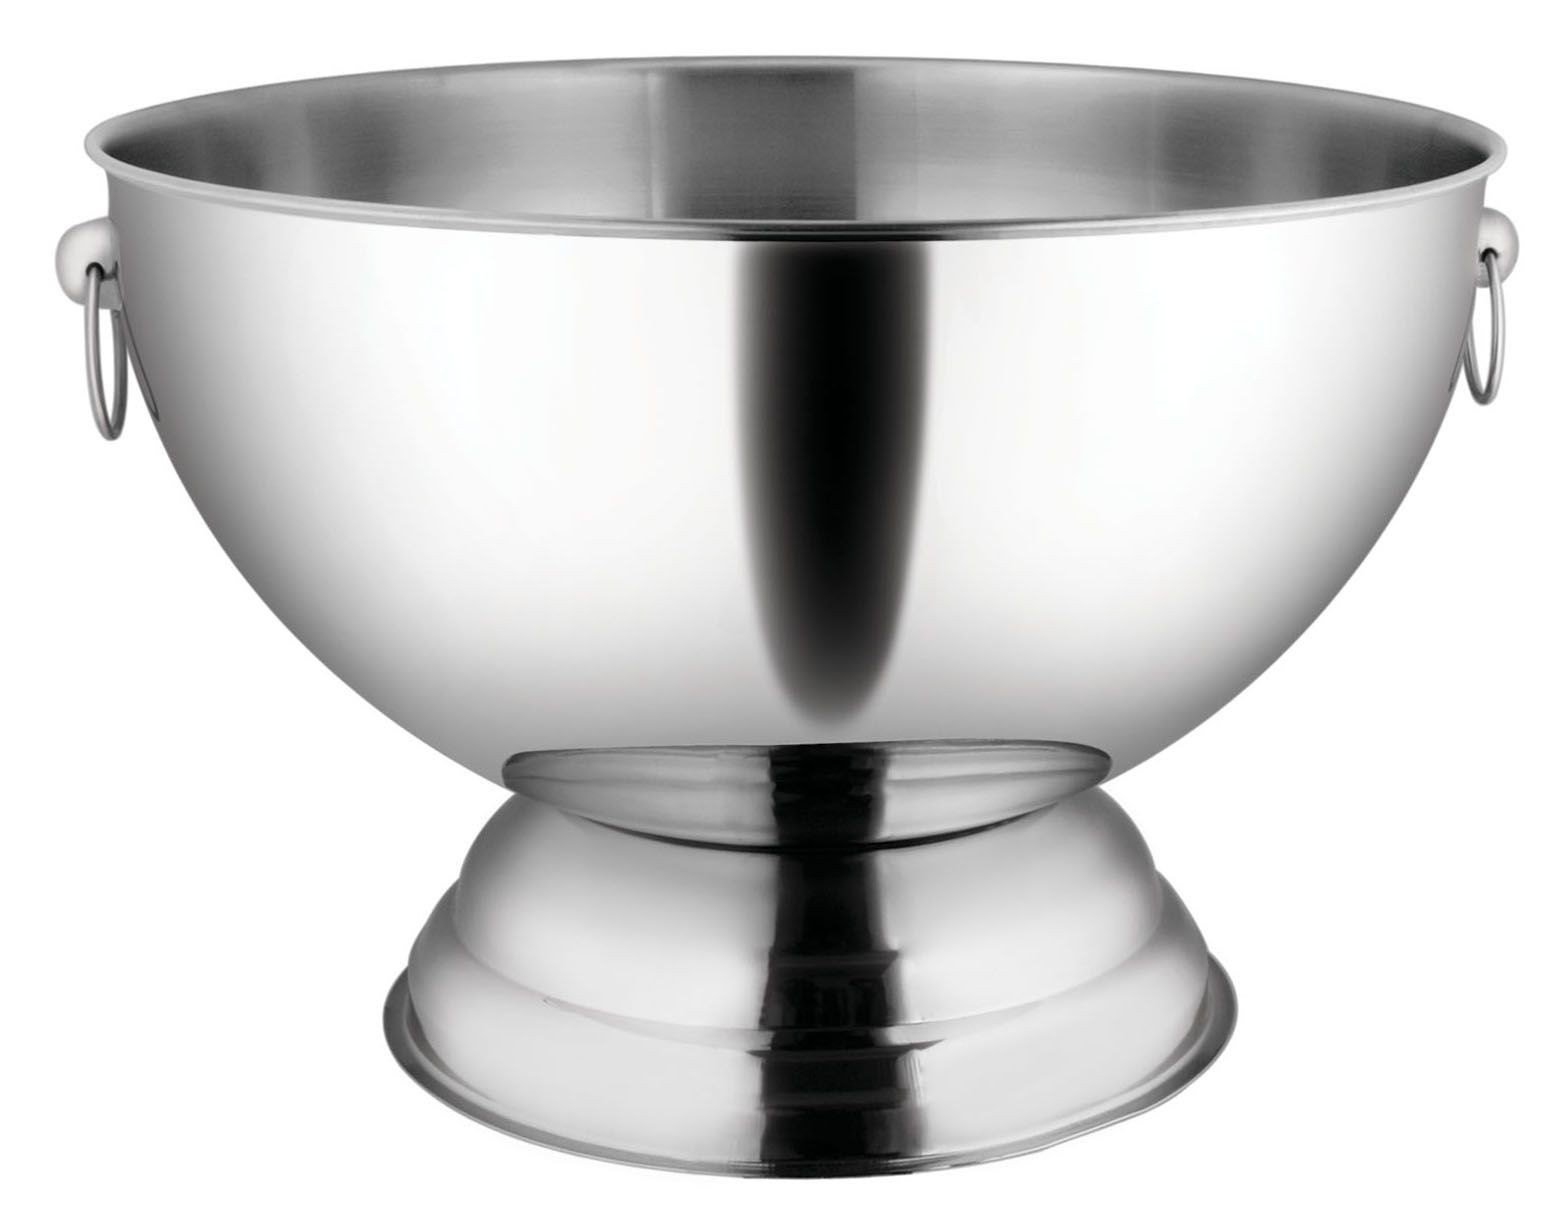 Winco SPD-35 Stainless Steel Punch Bowl, 3.5 Gallons